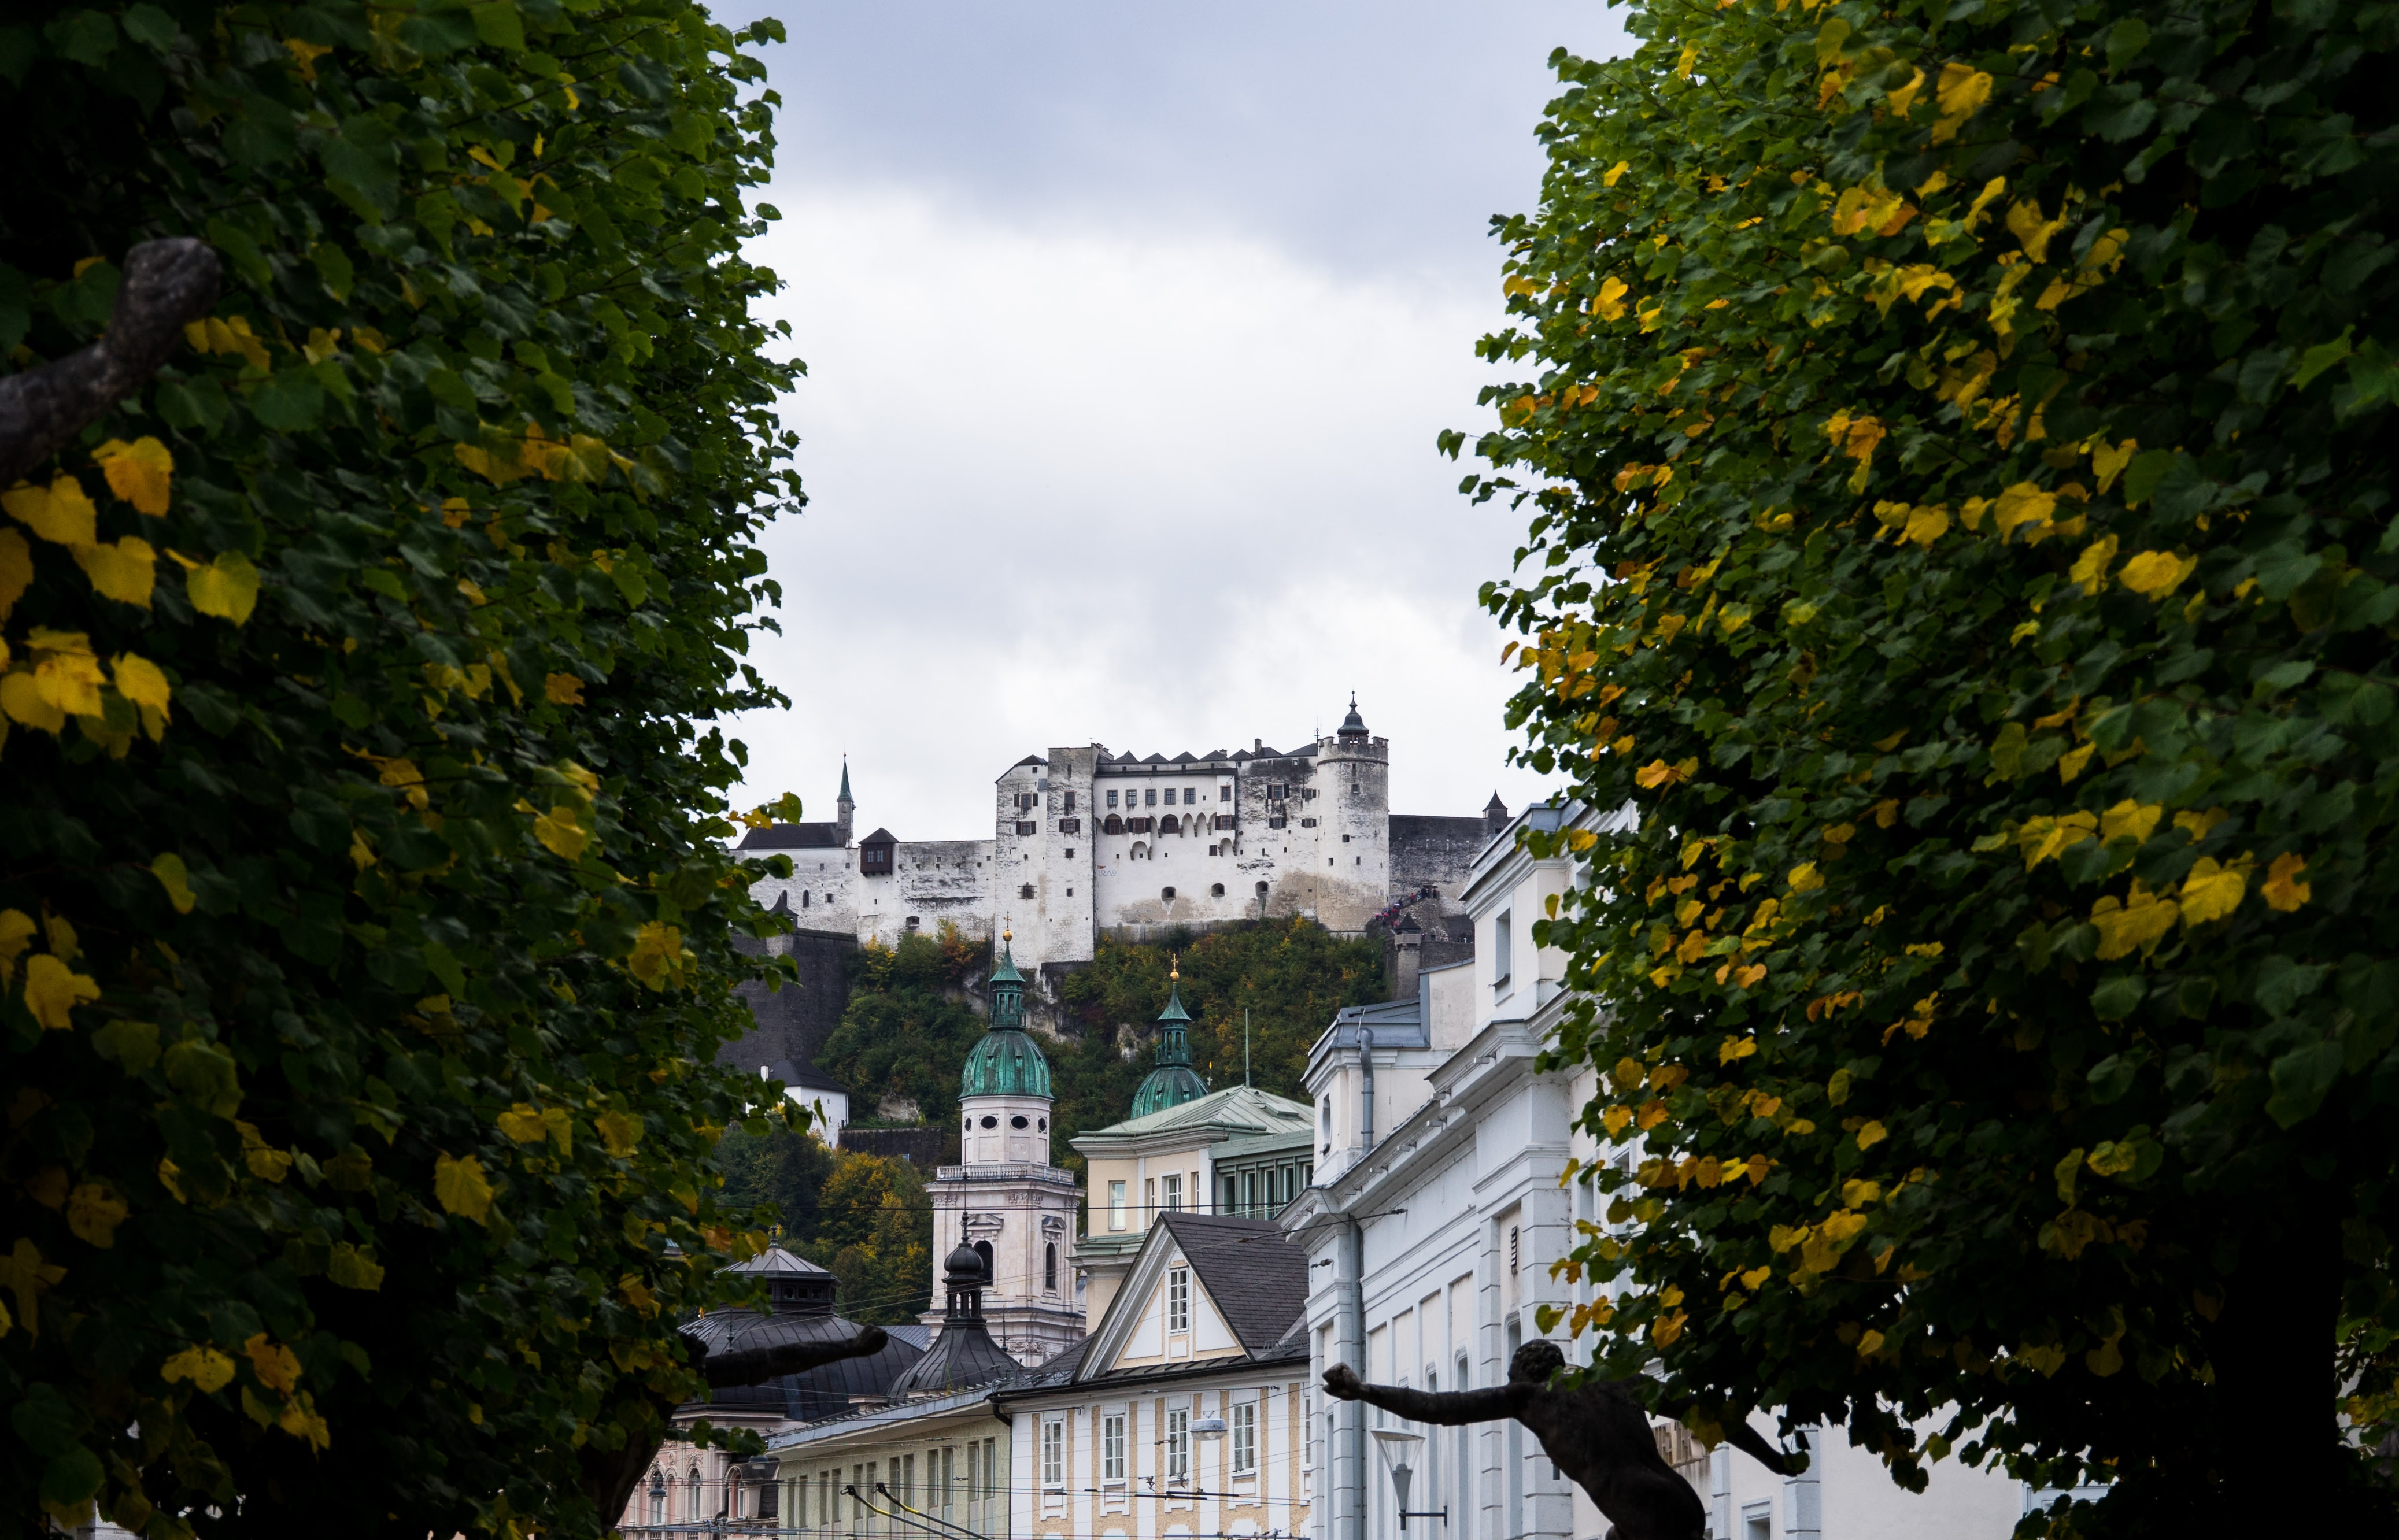 yellow flowering trees with castle in distance